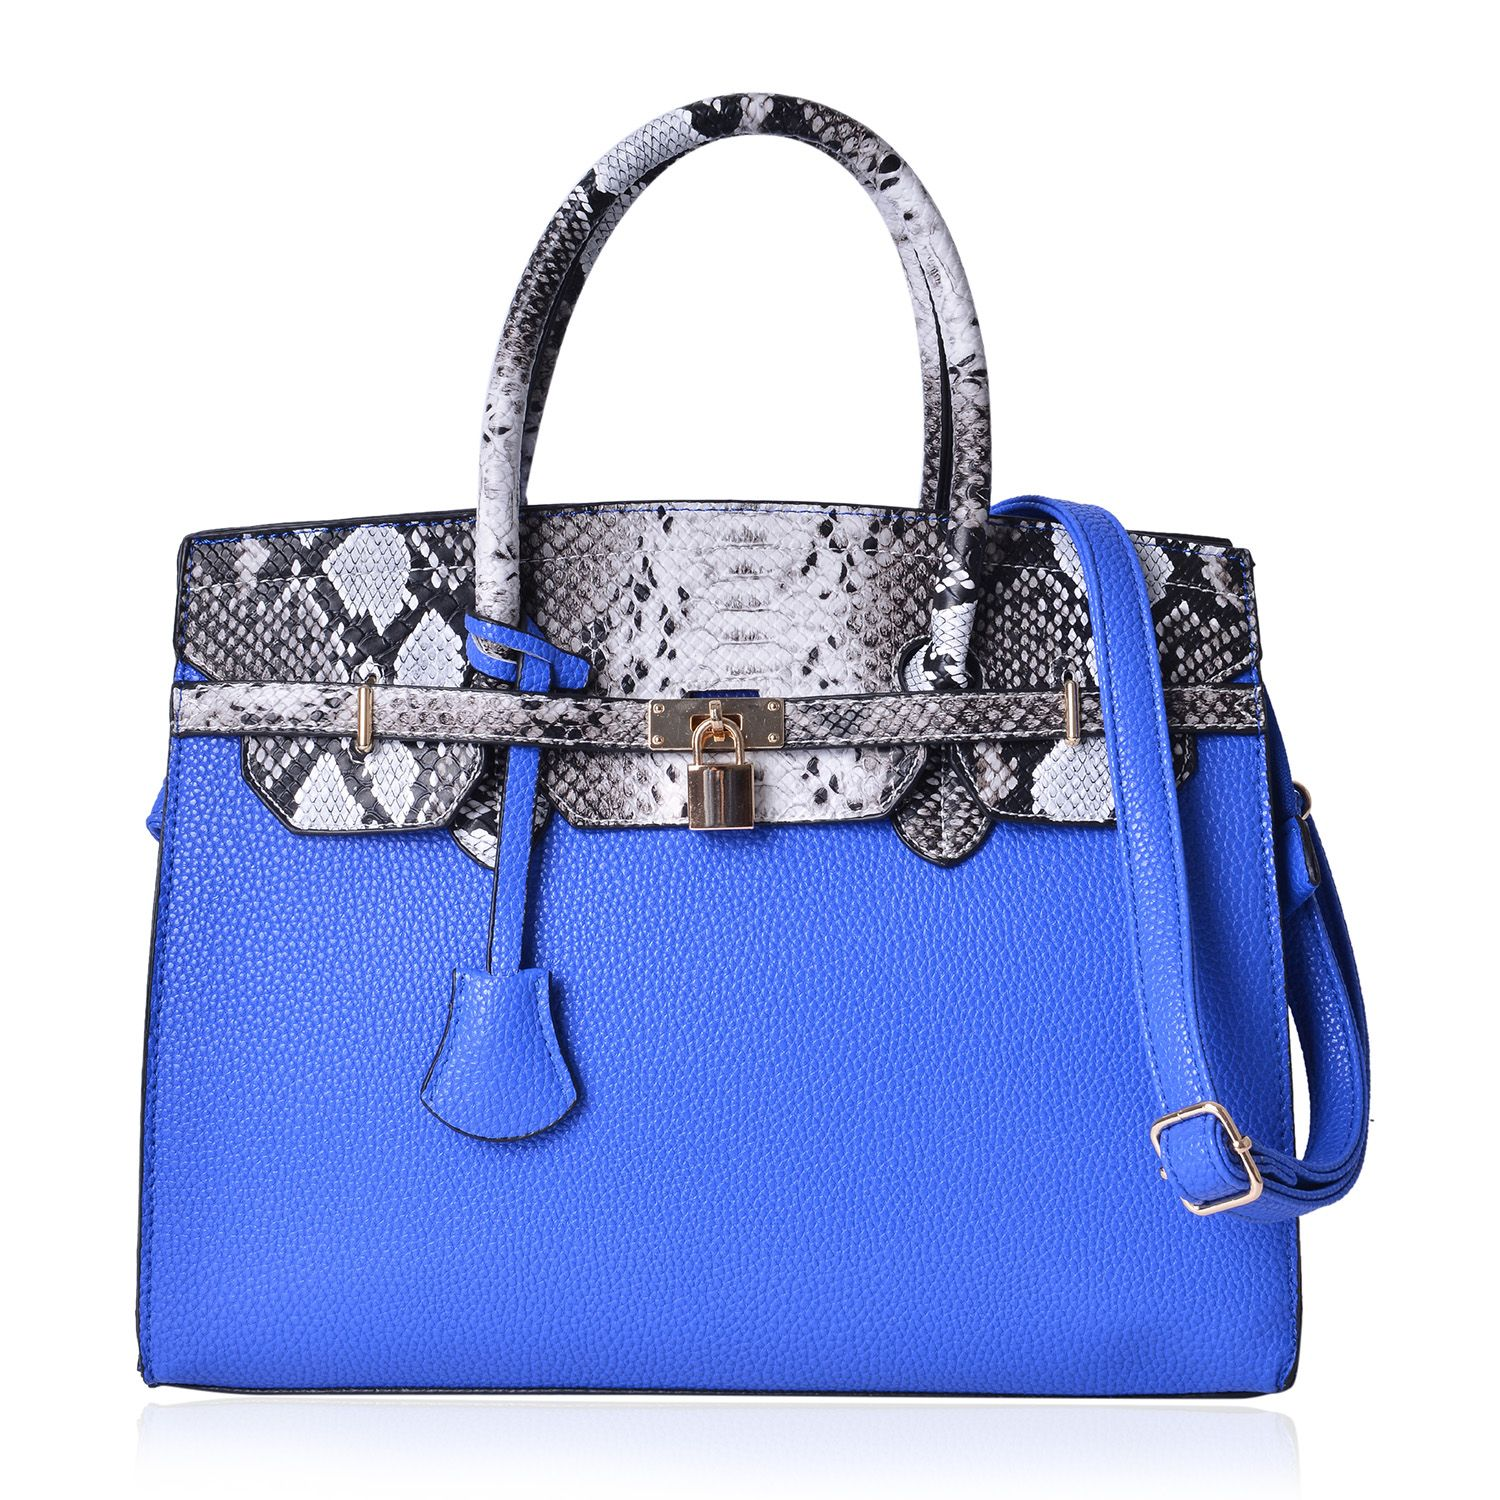 Blue and Snake Skin Pattern Faux Leather Structure Bag with Stand Studs and  Removable Shoulder Strap (14x6x10 in)